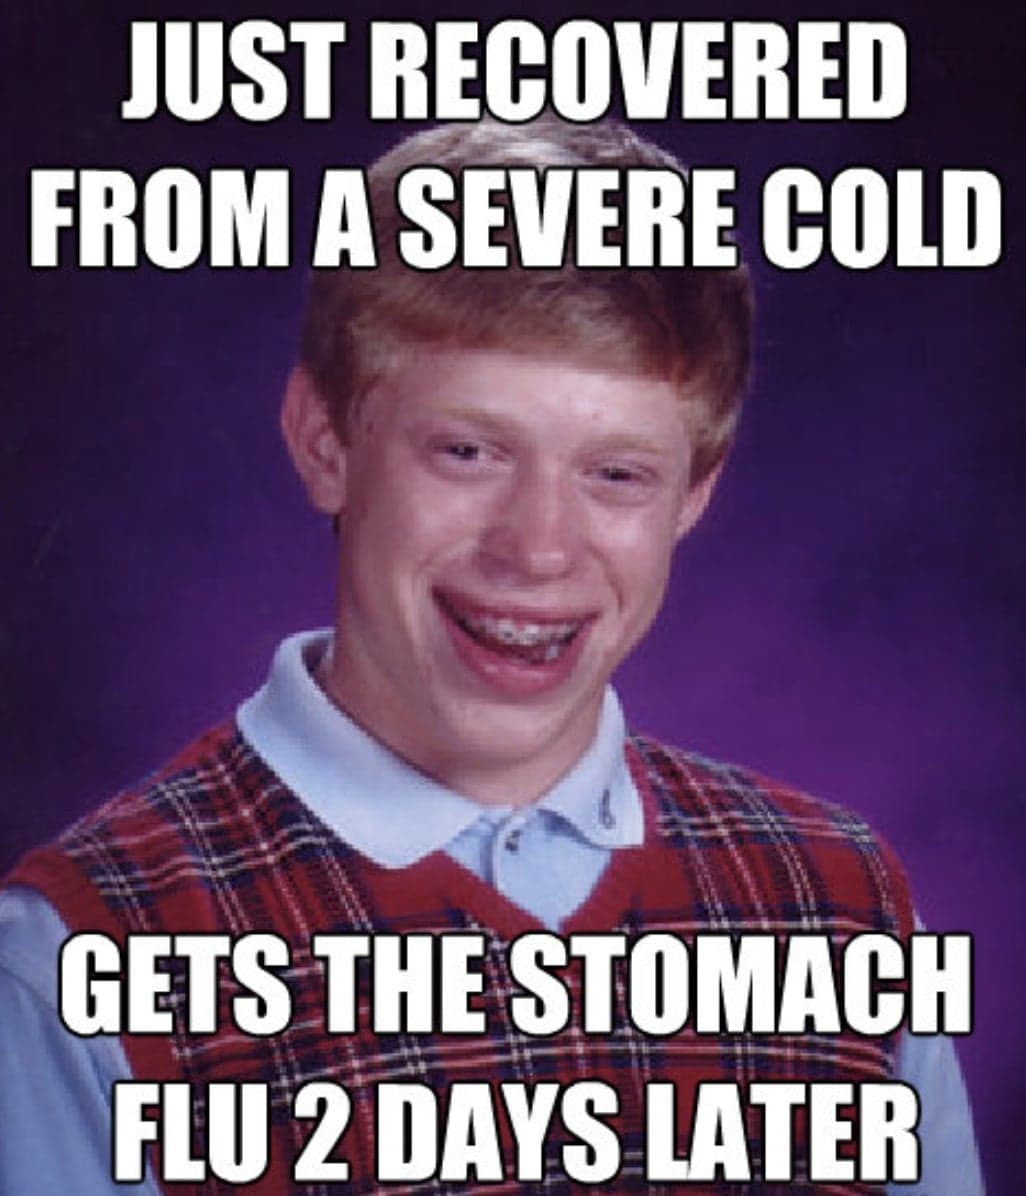 Just recovered from a severe cold, gets the stomach flu 2 days later